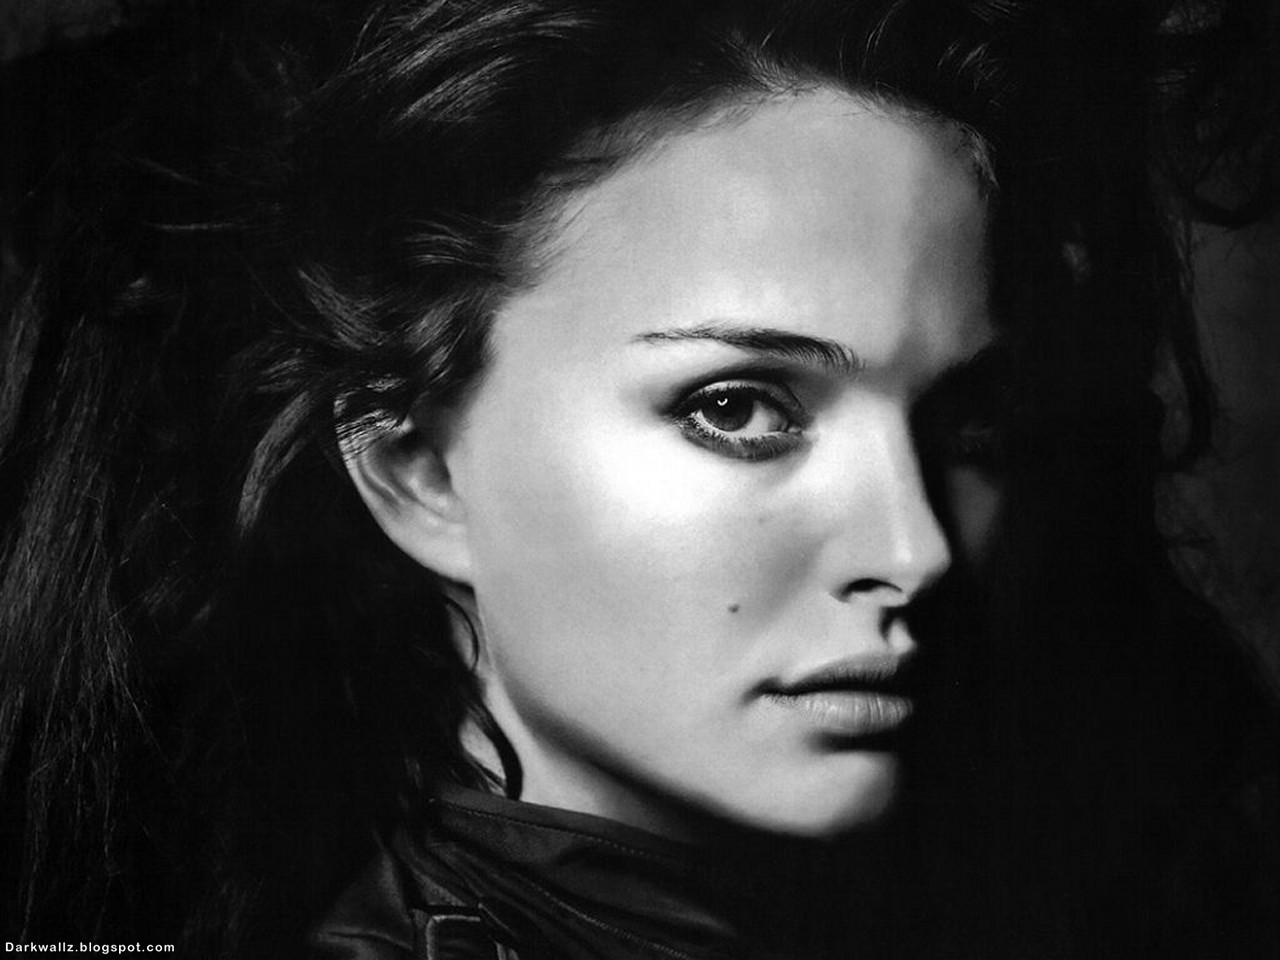 Natalie Portman | Dark Wallpaper Download